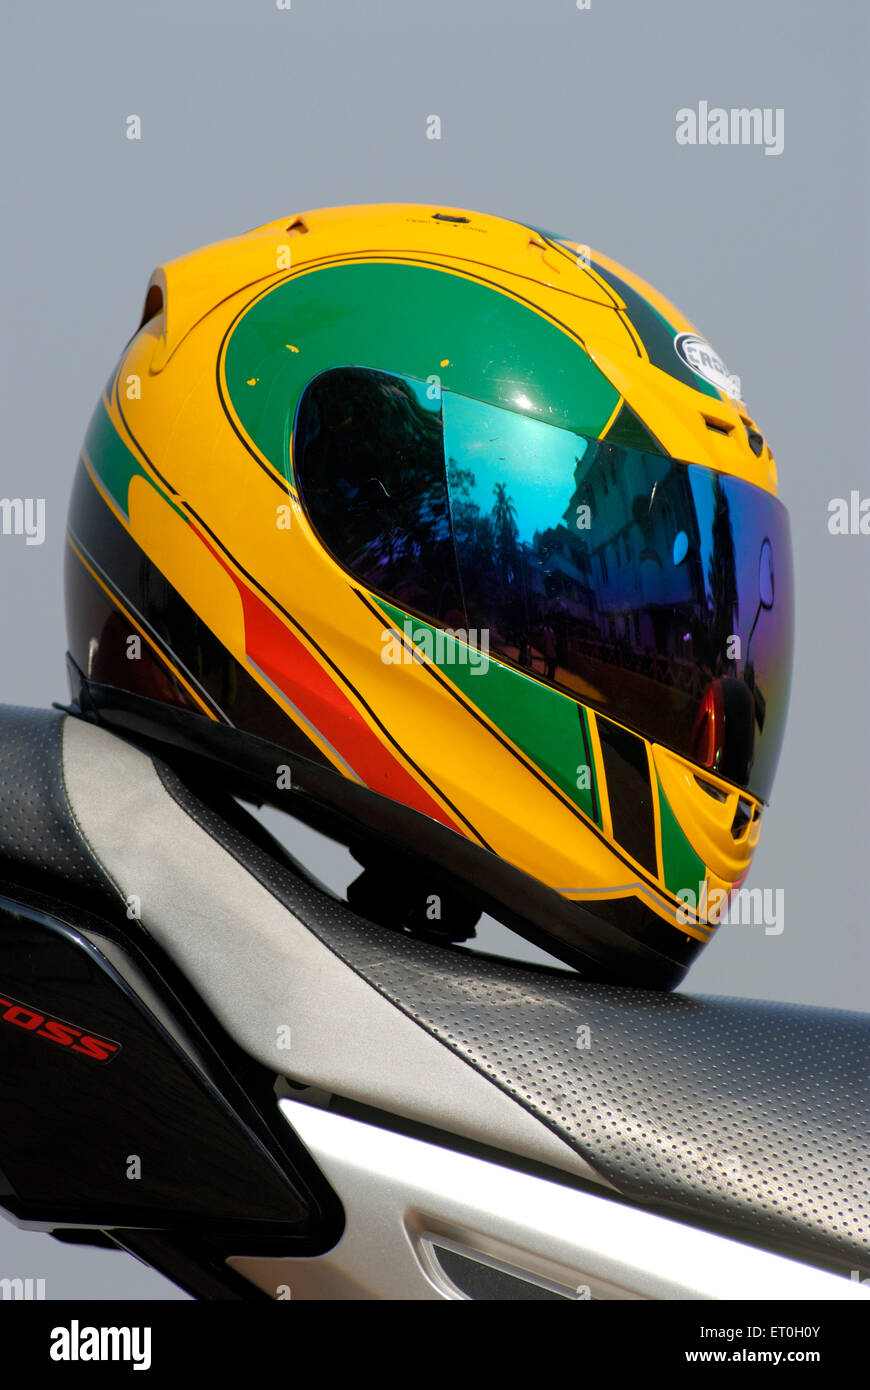 Colourful helmet on yamaha fz 150cc bike ; India - Stock Image